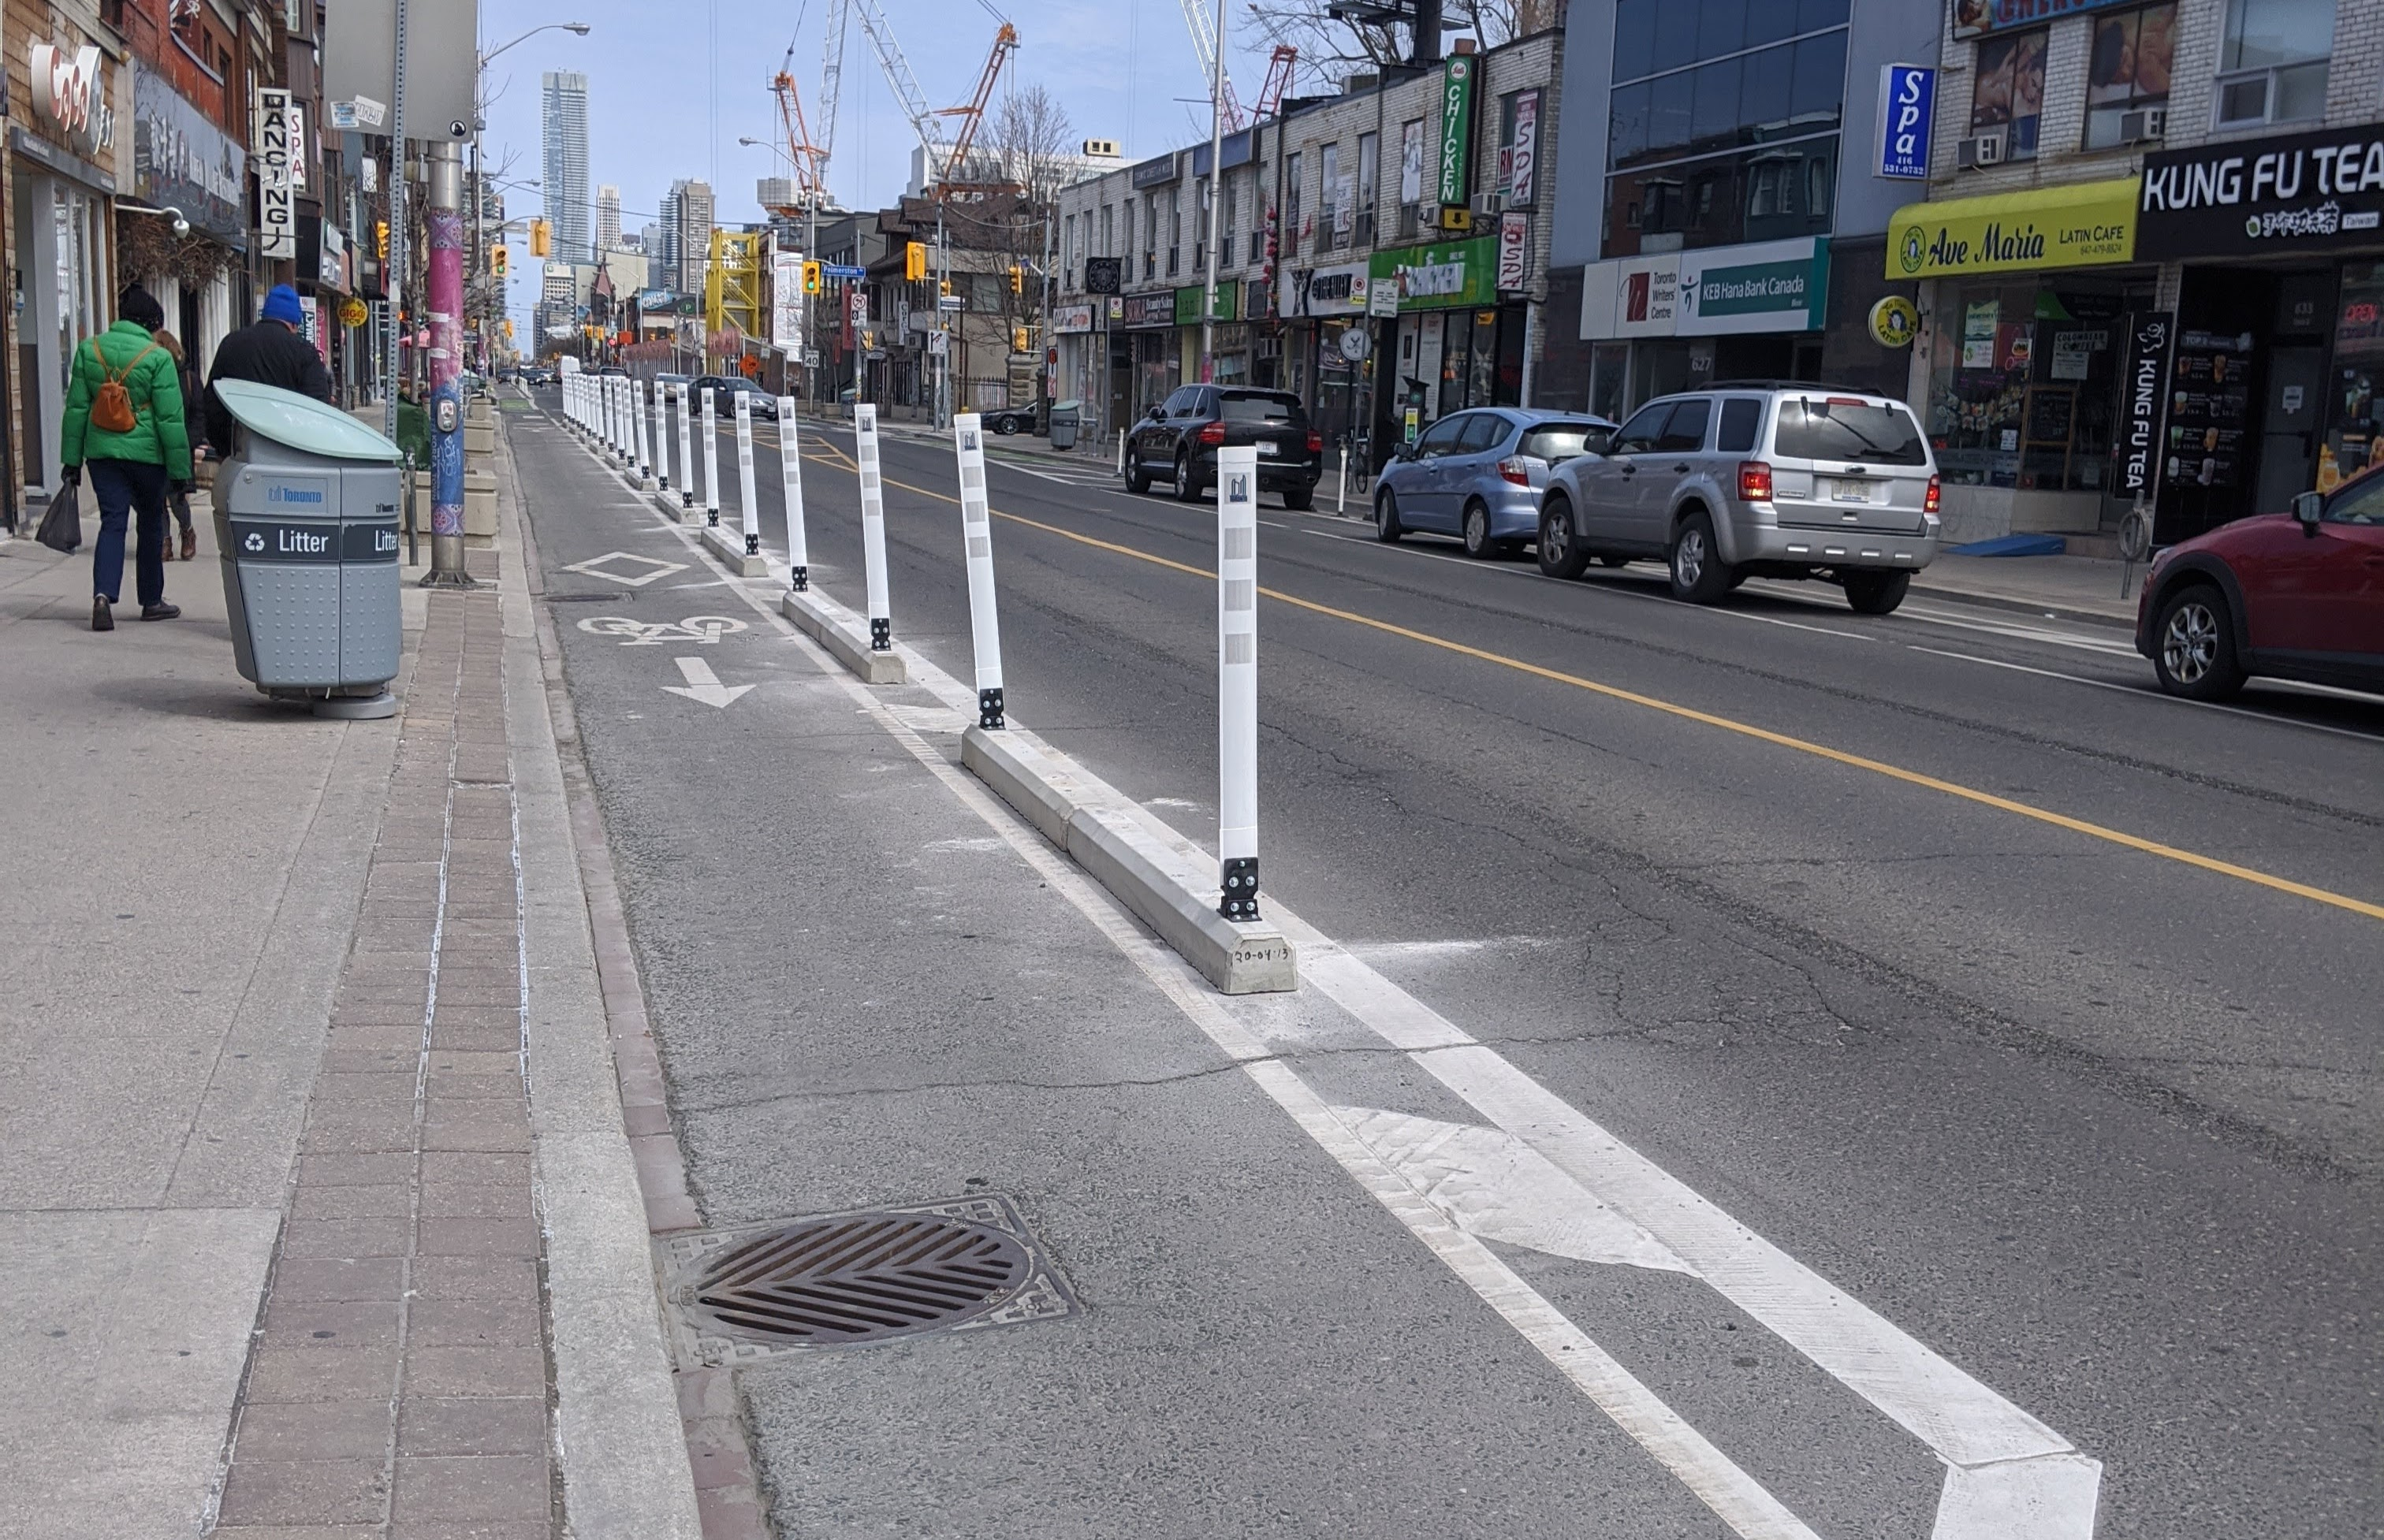 Curbs with bollards on top separate a bike lane from a busy street